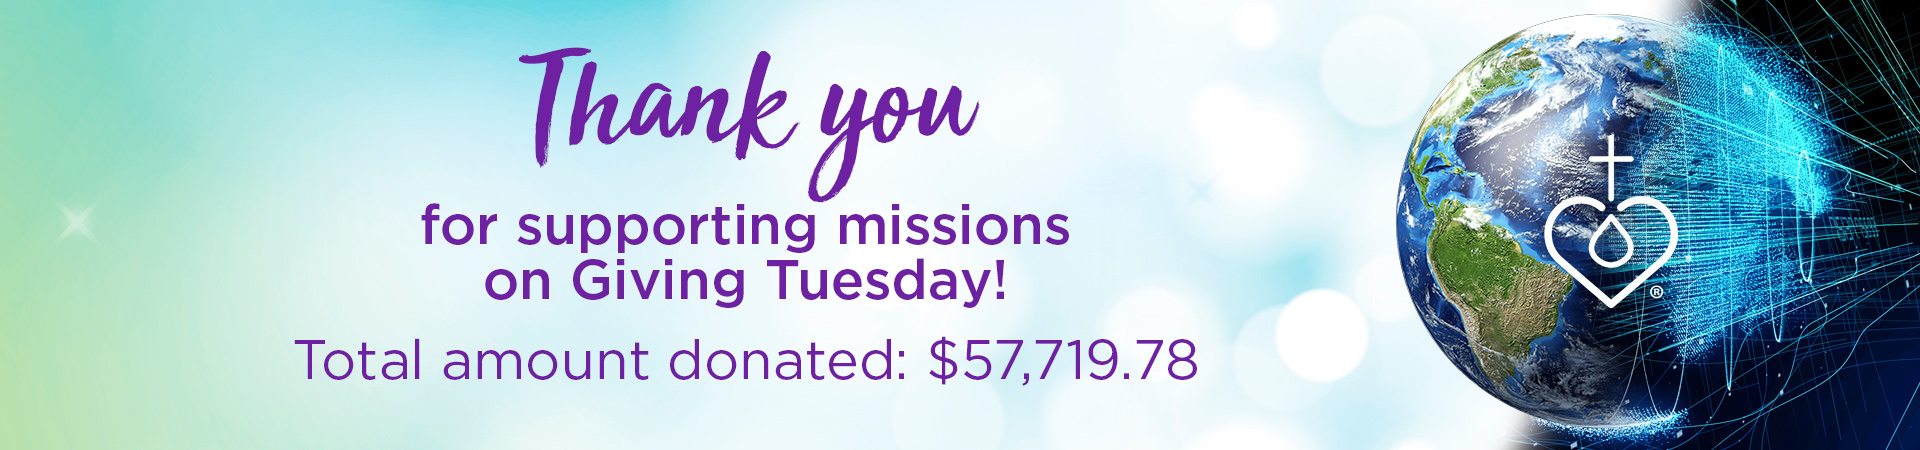 Thank you for supporting missions on Giving Tuesday! Total amount donated: $57,719.78